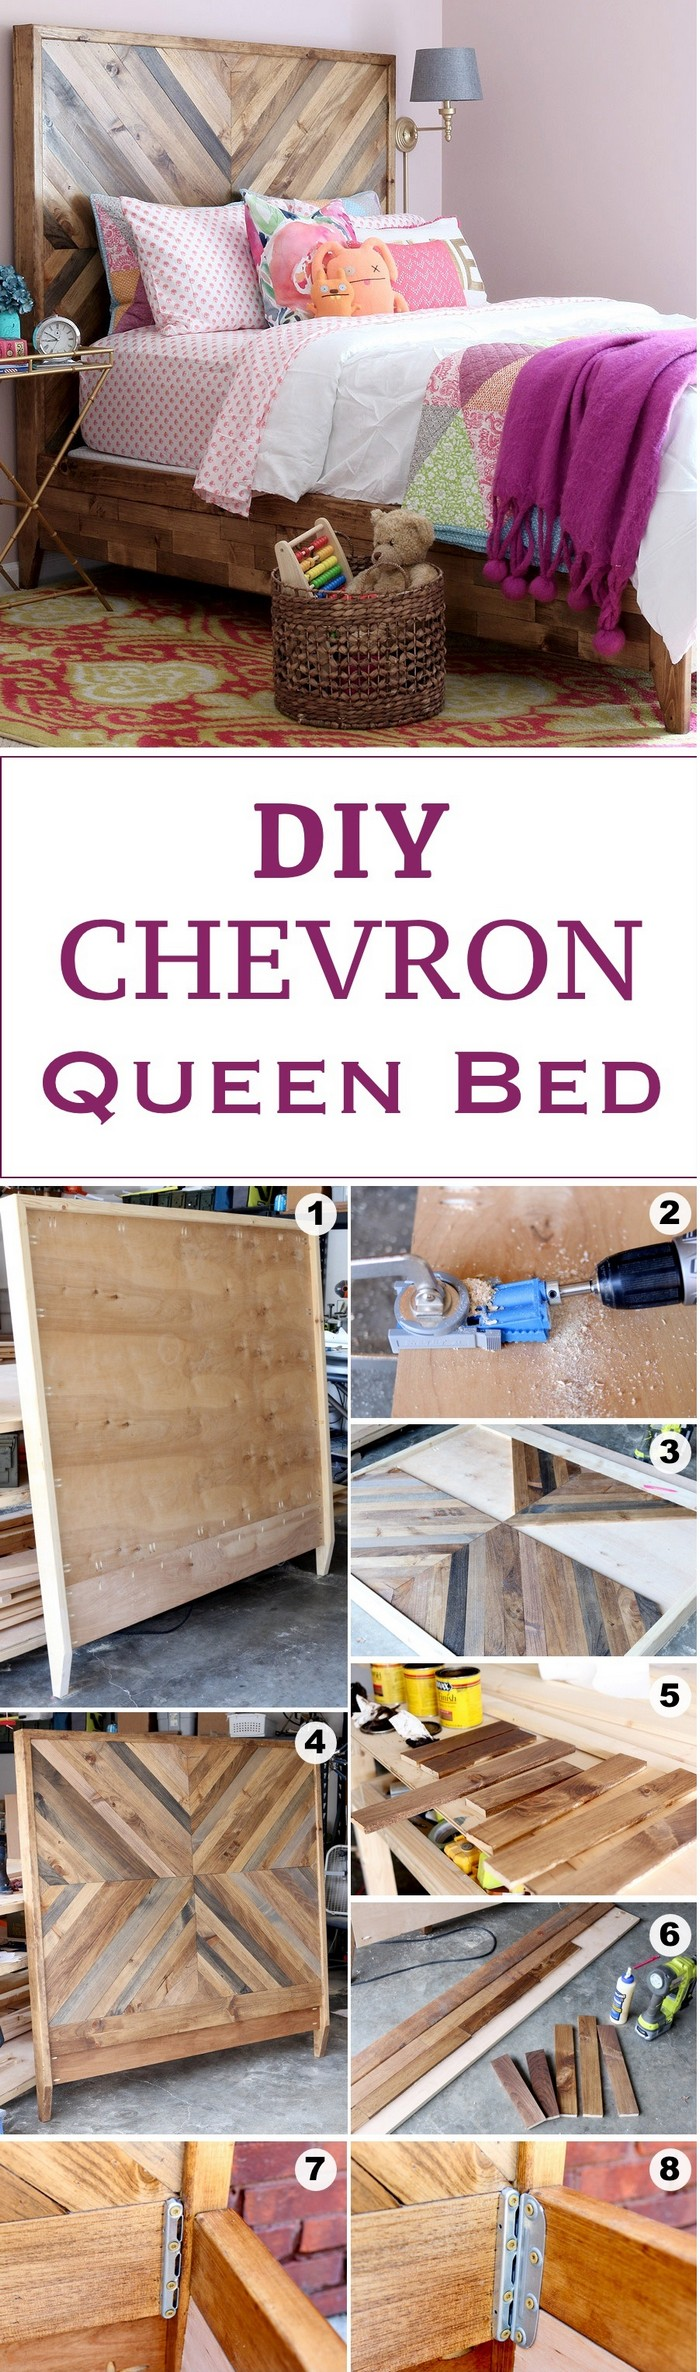 DIY Chevron Reclaimed Bed - diy bed frame - DIY Bed Plans -diy bed